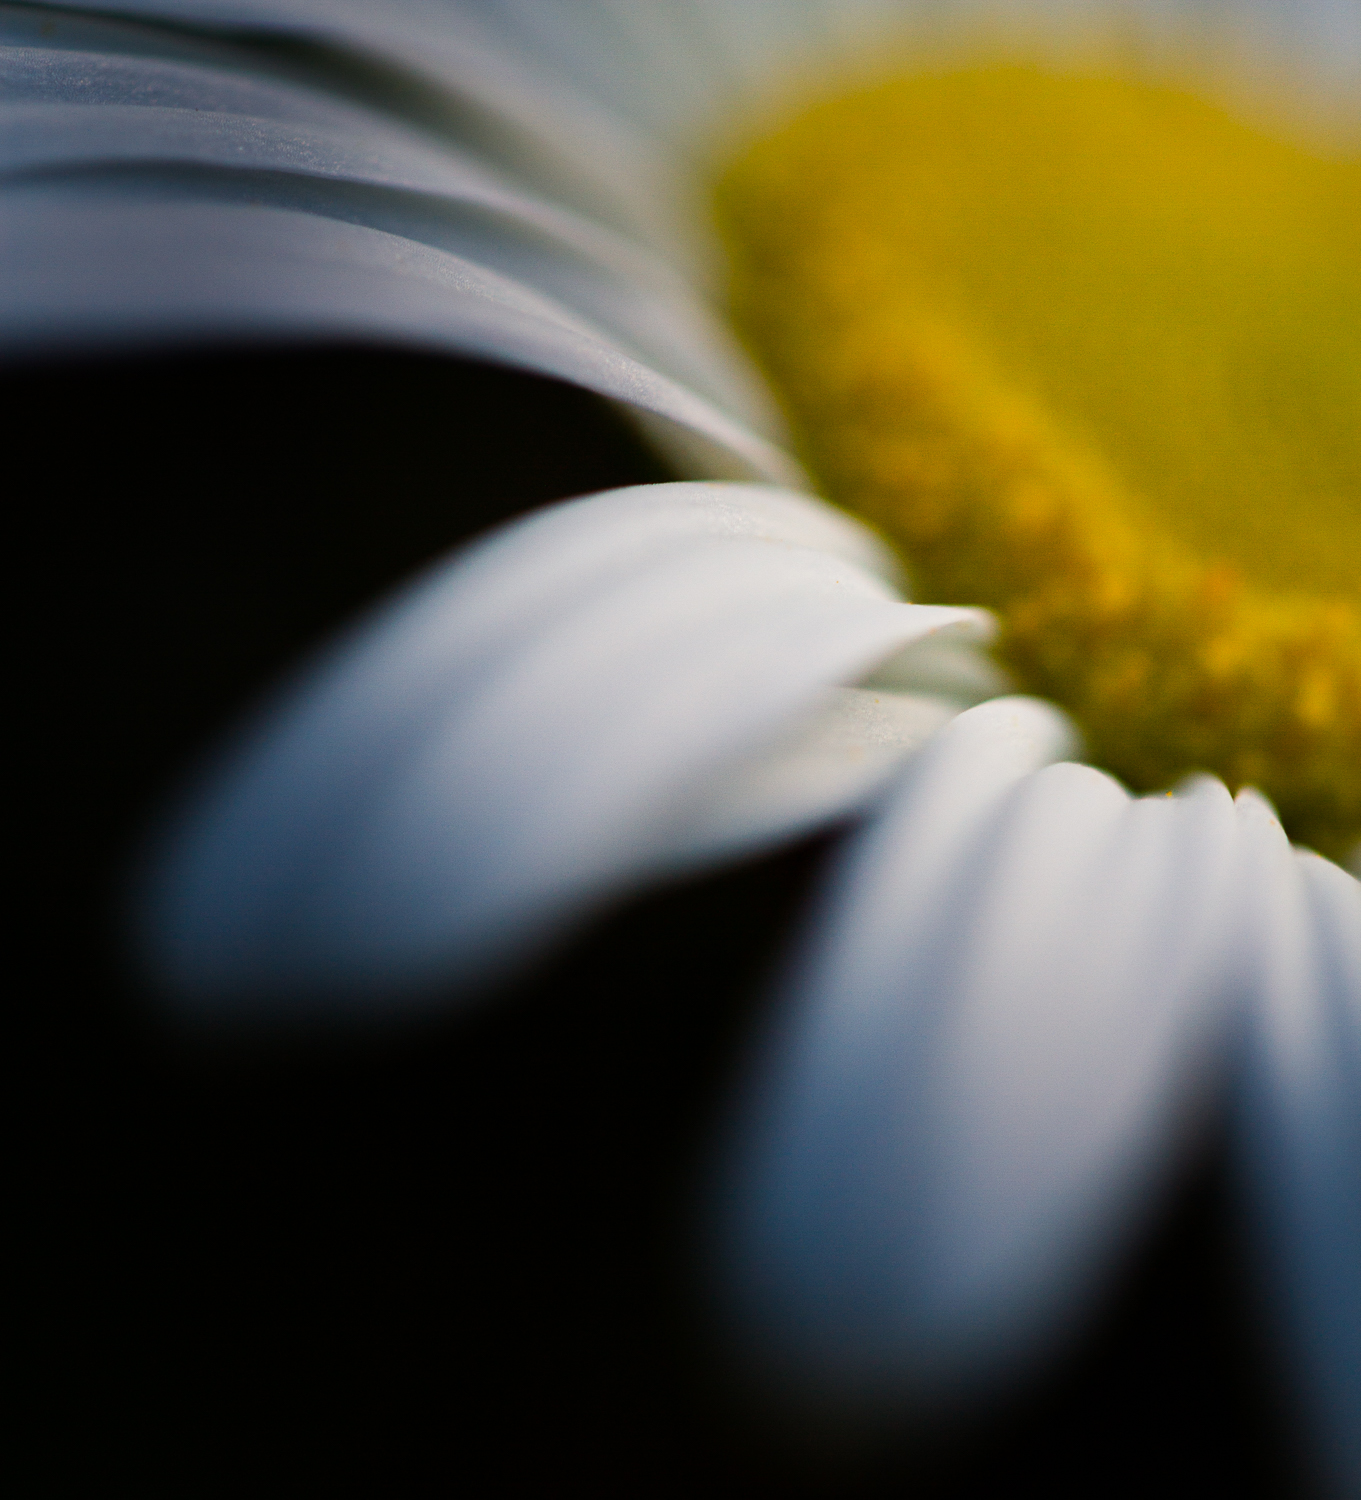 photography while social distancing –abstract still life flower